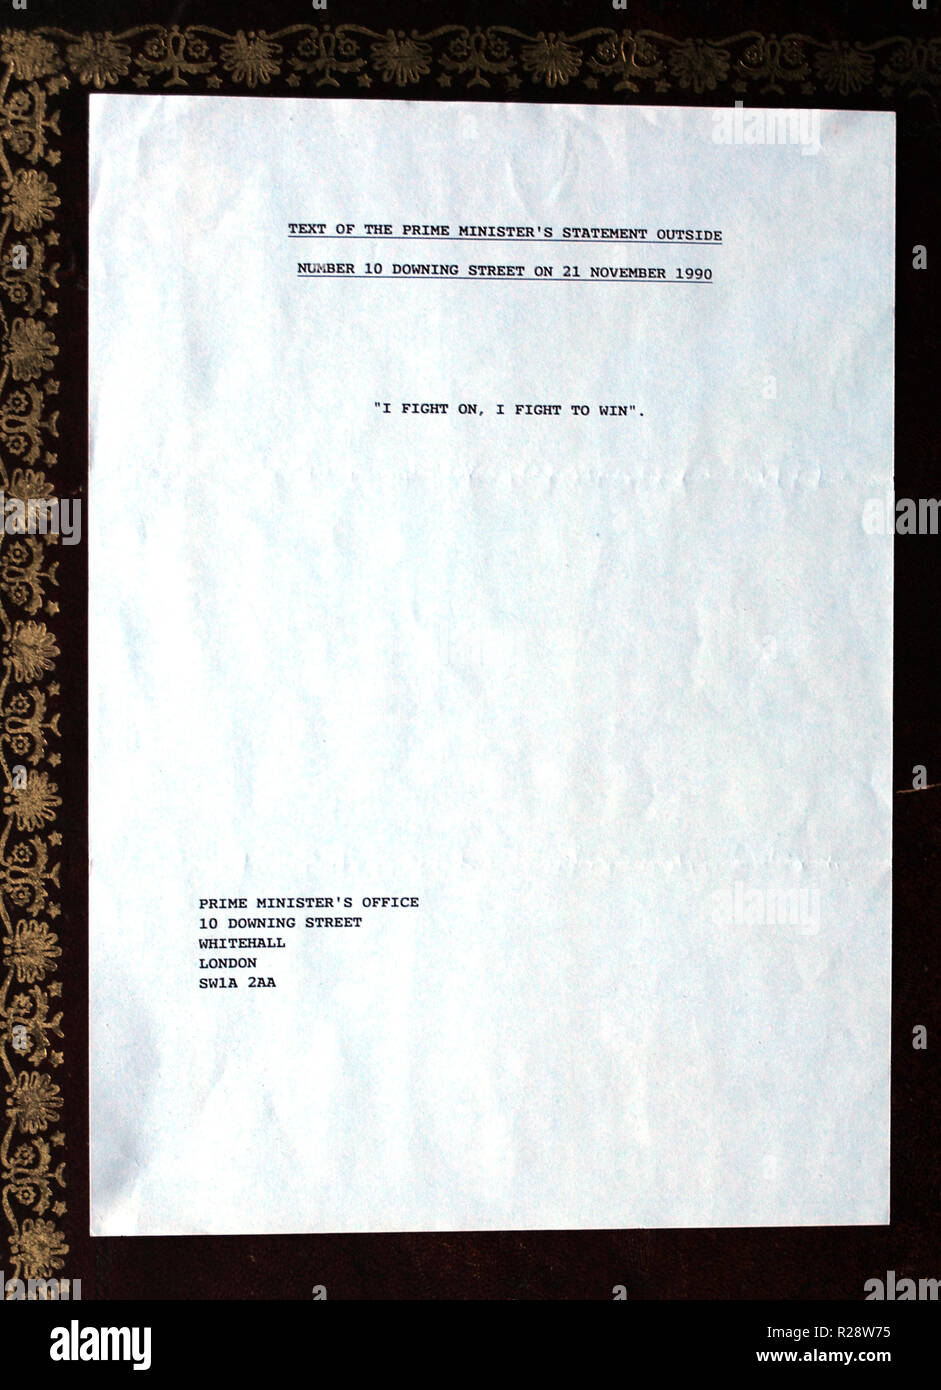 Original press releases relating to the resignation of the, then, Prime Minister, Margaret Thatcher, are seen in studio photographs taken in London - Stock Image